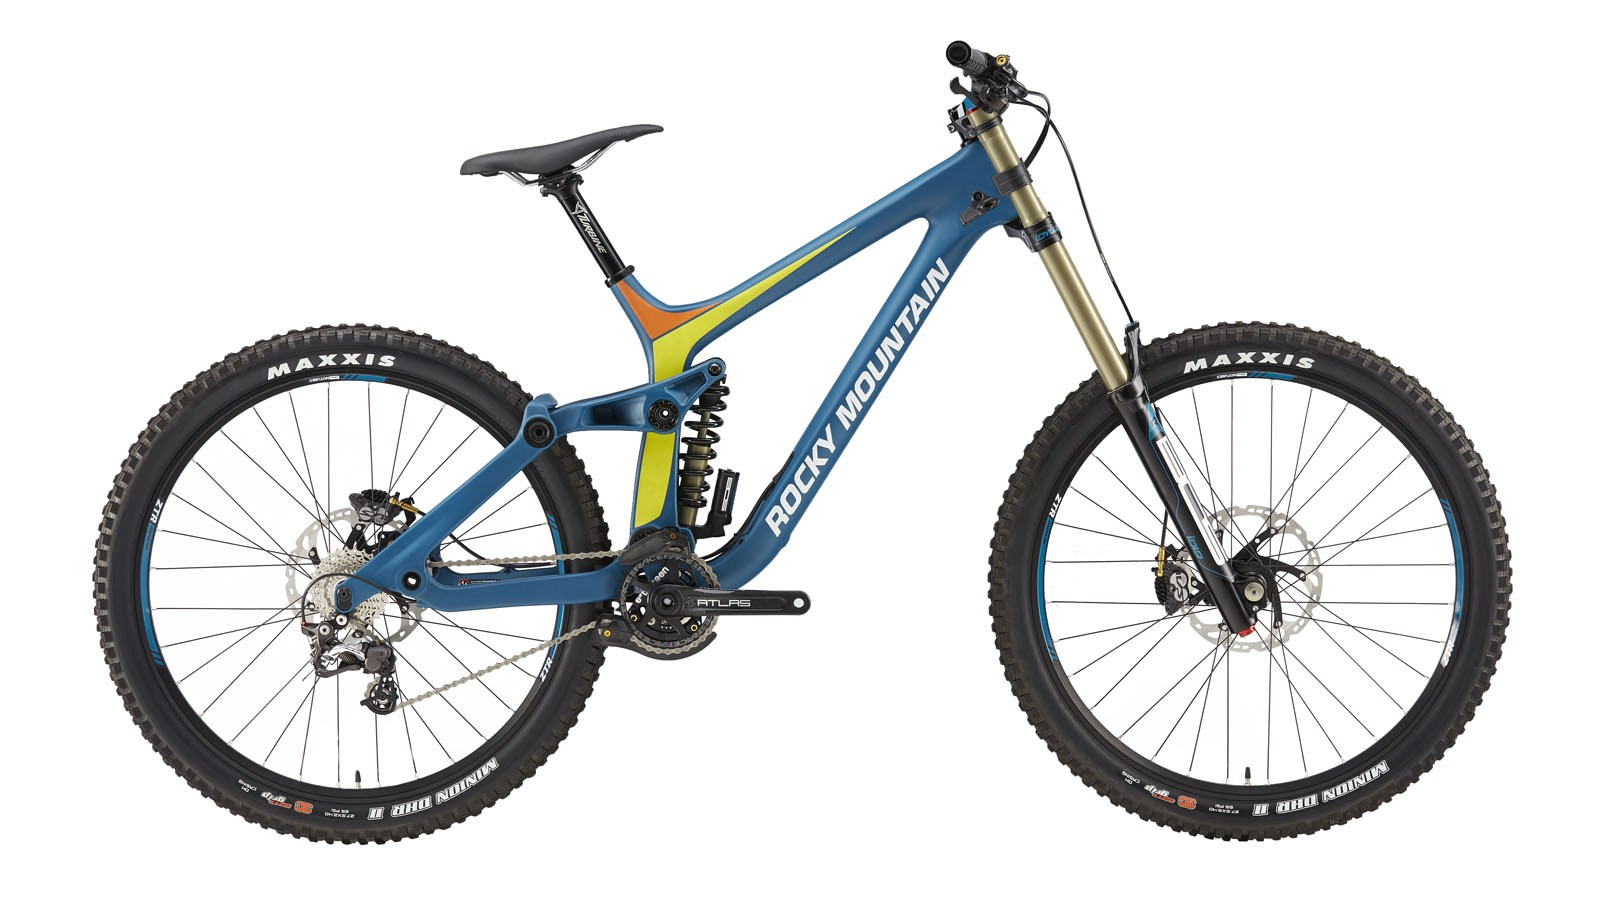 The 2016 Rocky Mountain Maiden #carbonmaiden (And also available in black)